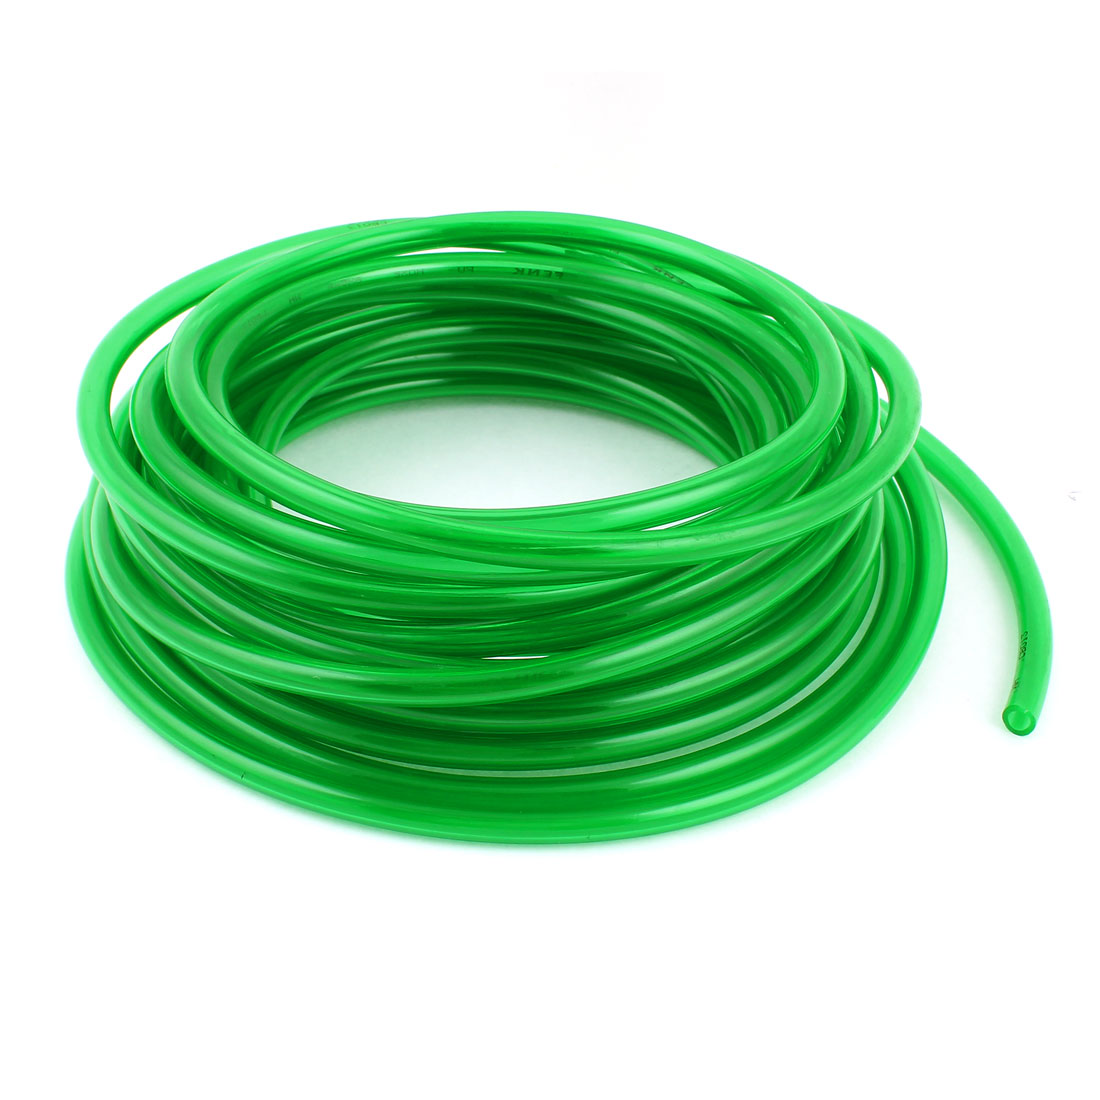 10m 33ft 10mmx6.5mm Pneumatic Polyurethane PU Hose Tube Pipe Clear Green